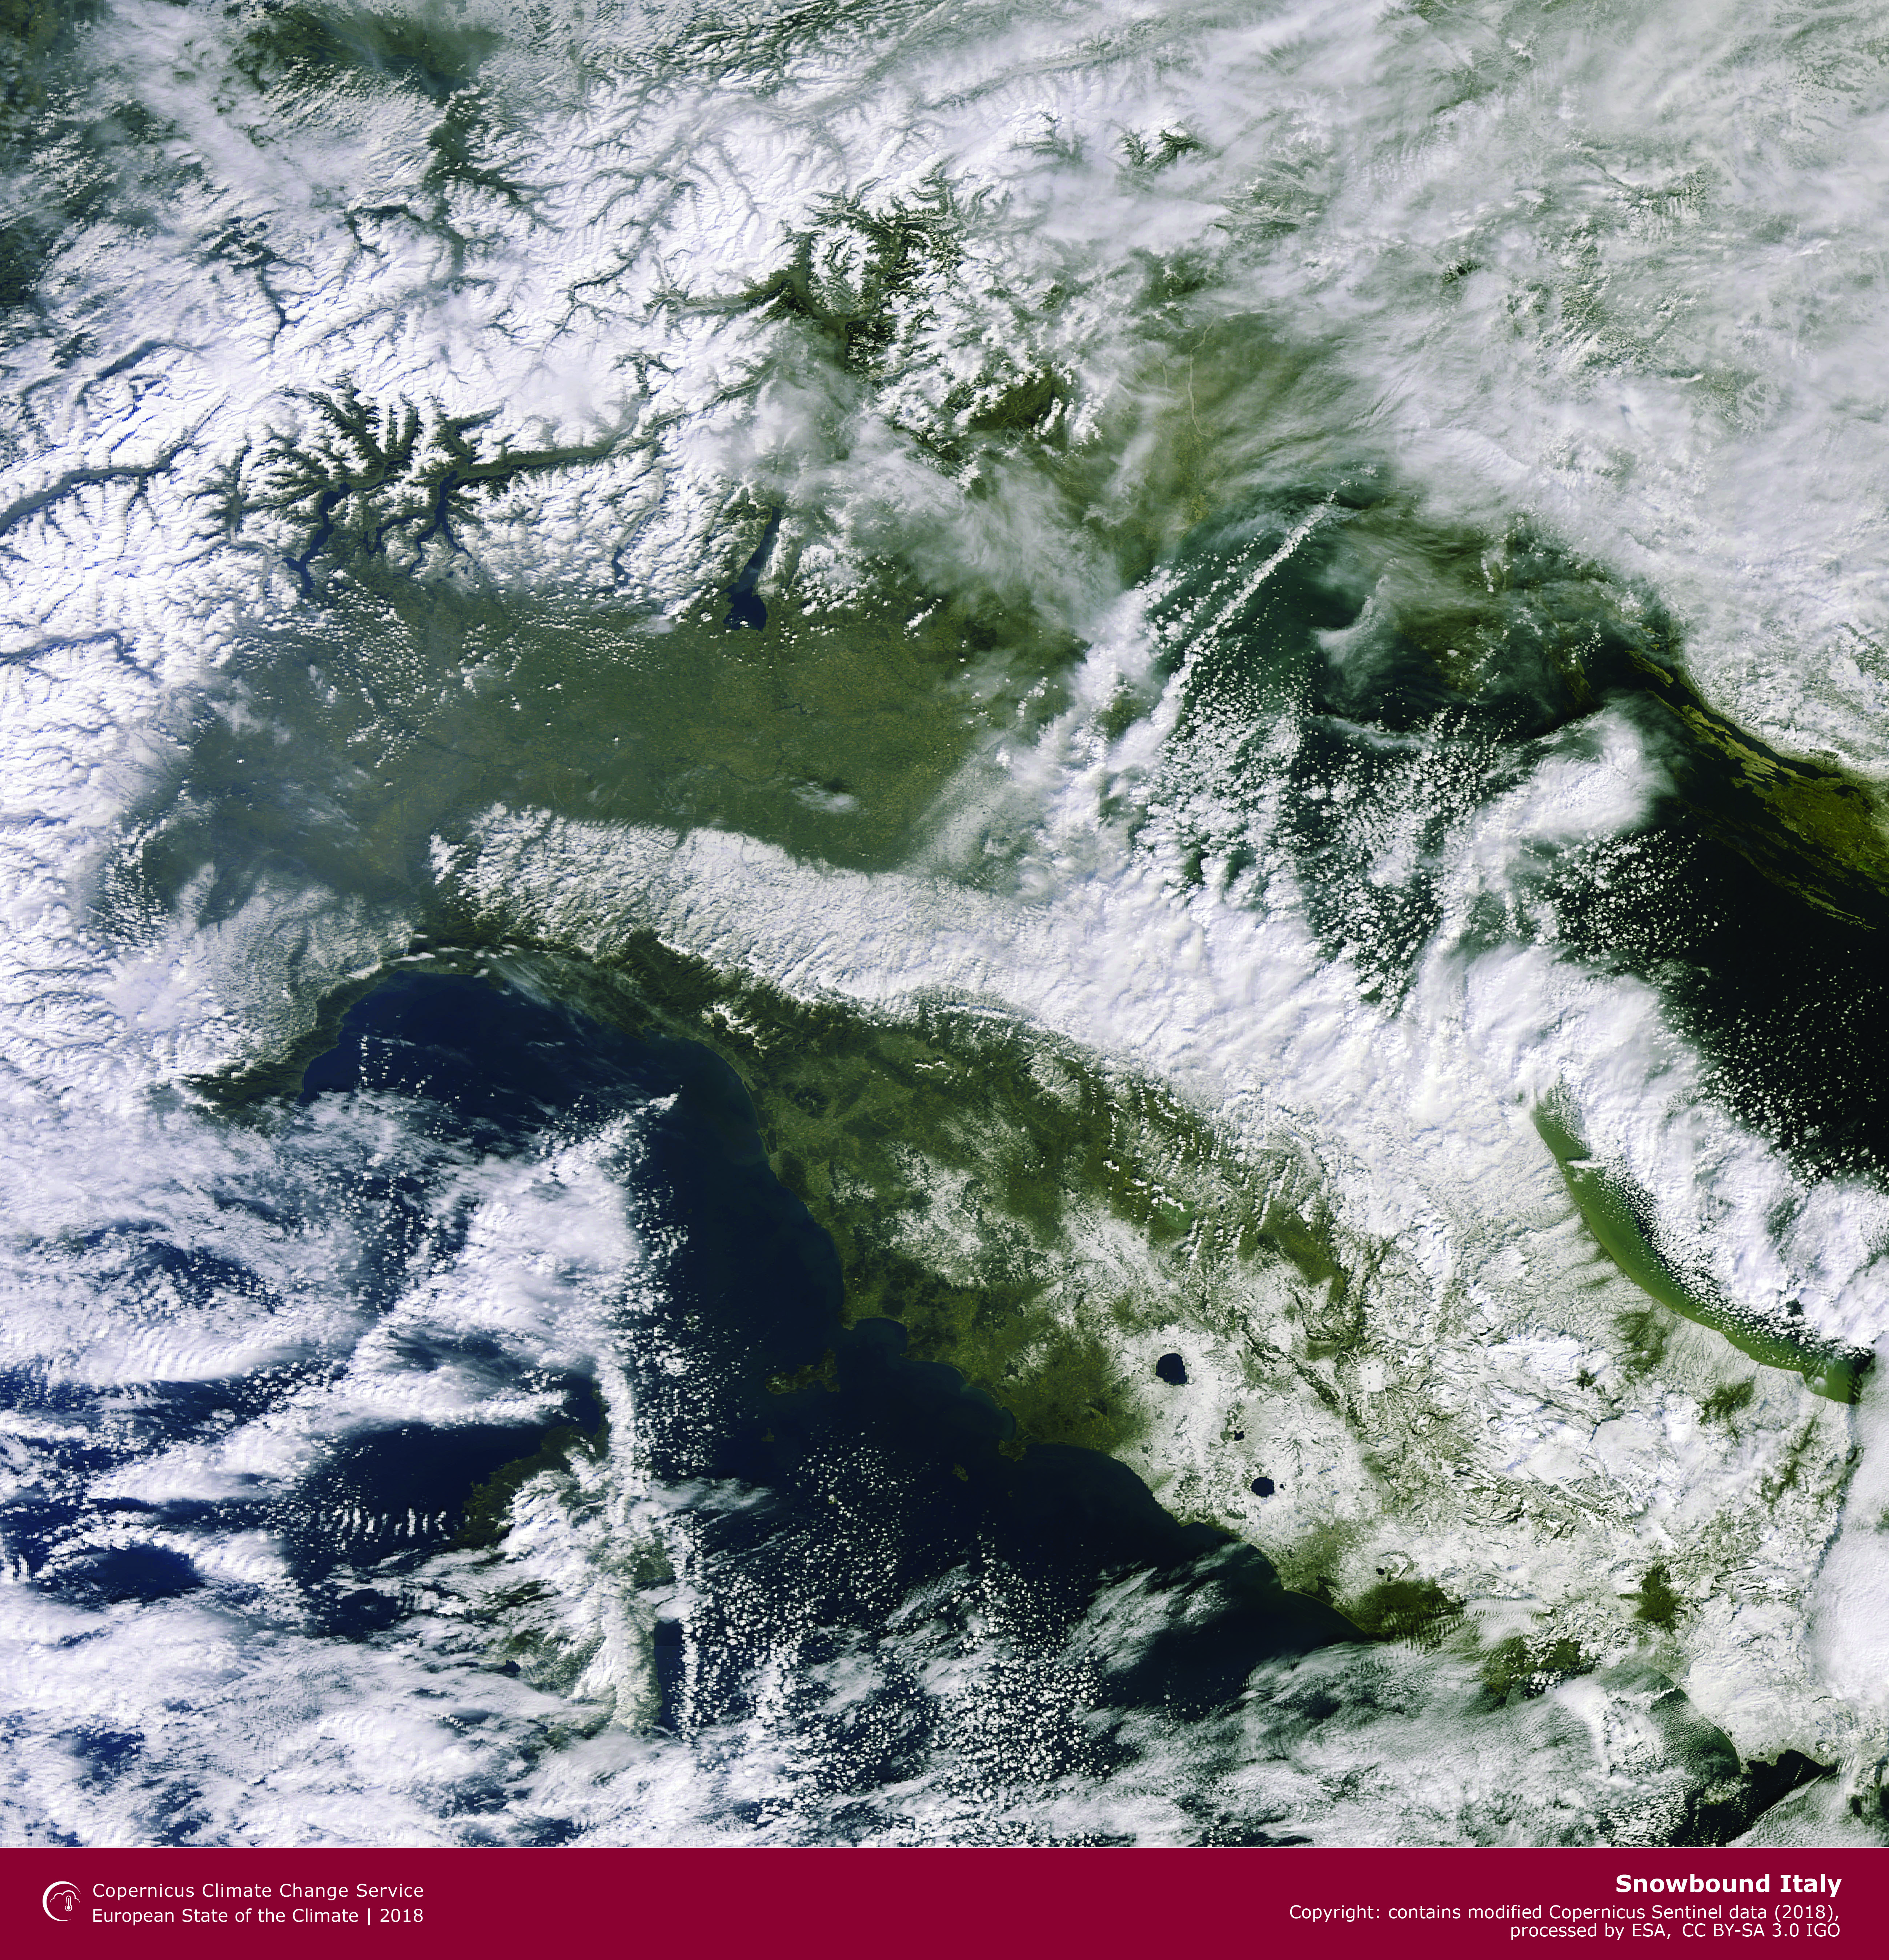 photo: Copernicus;desc: Snowbound Italy.;